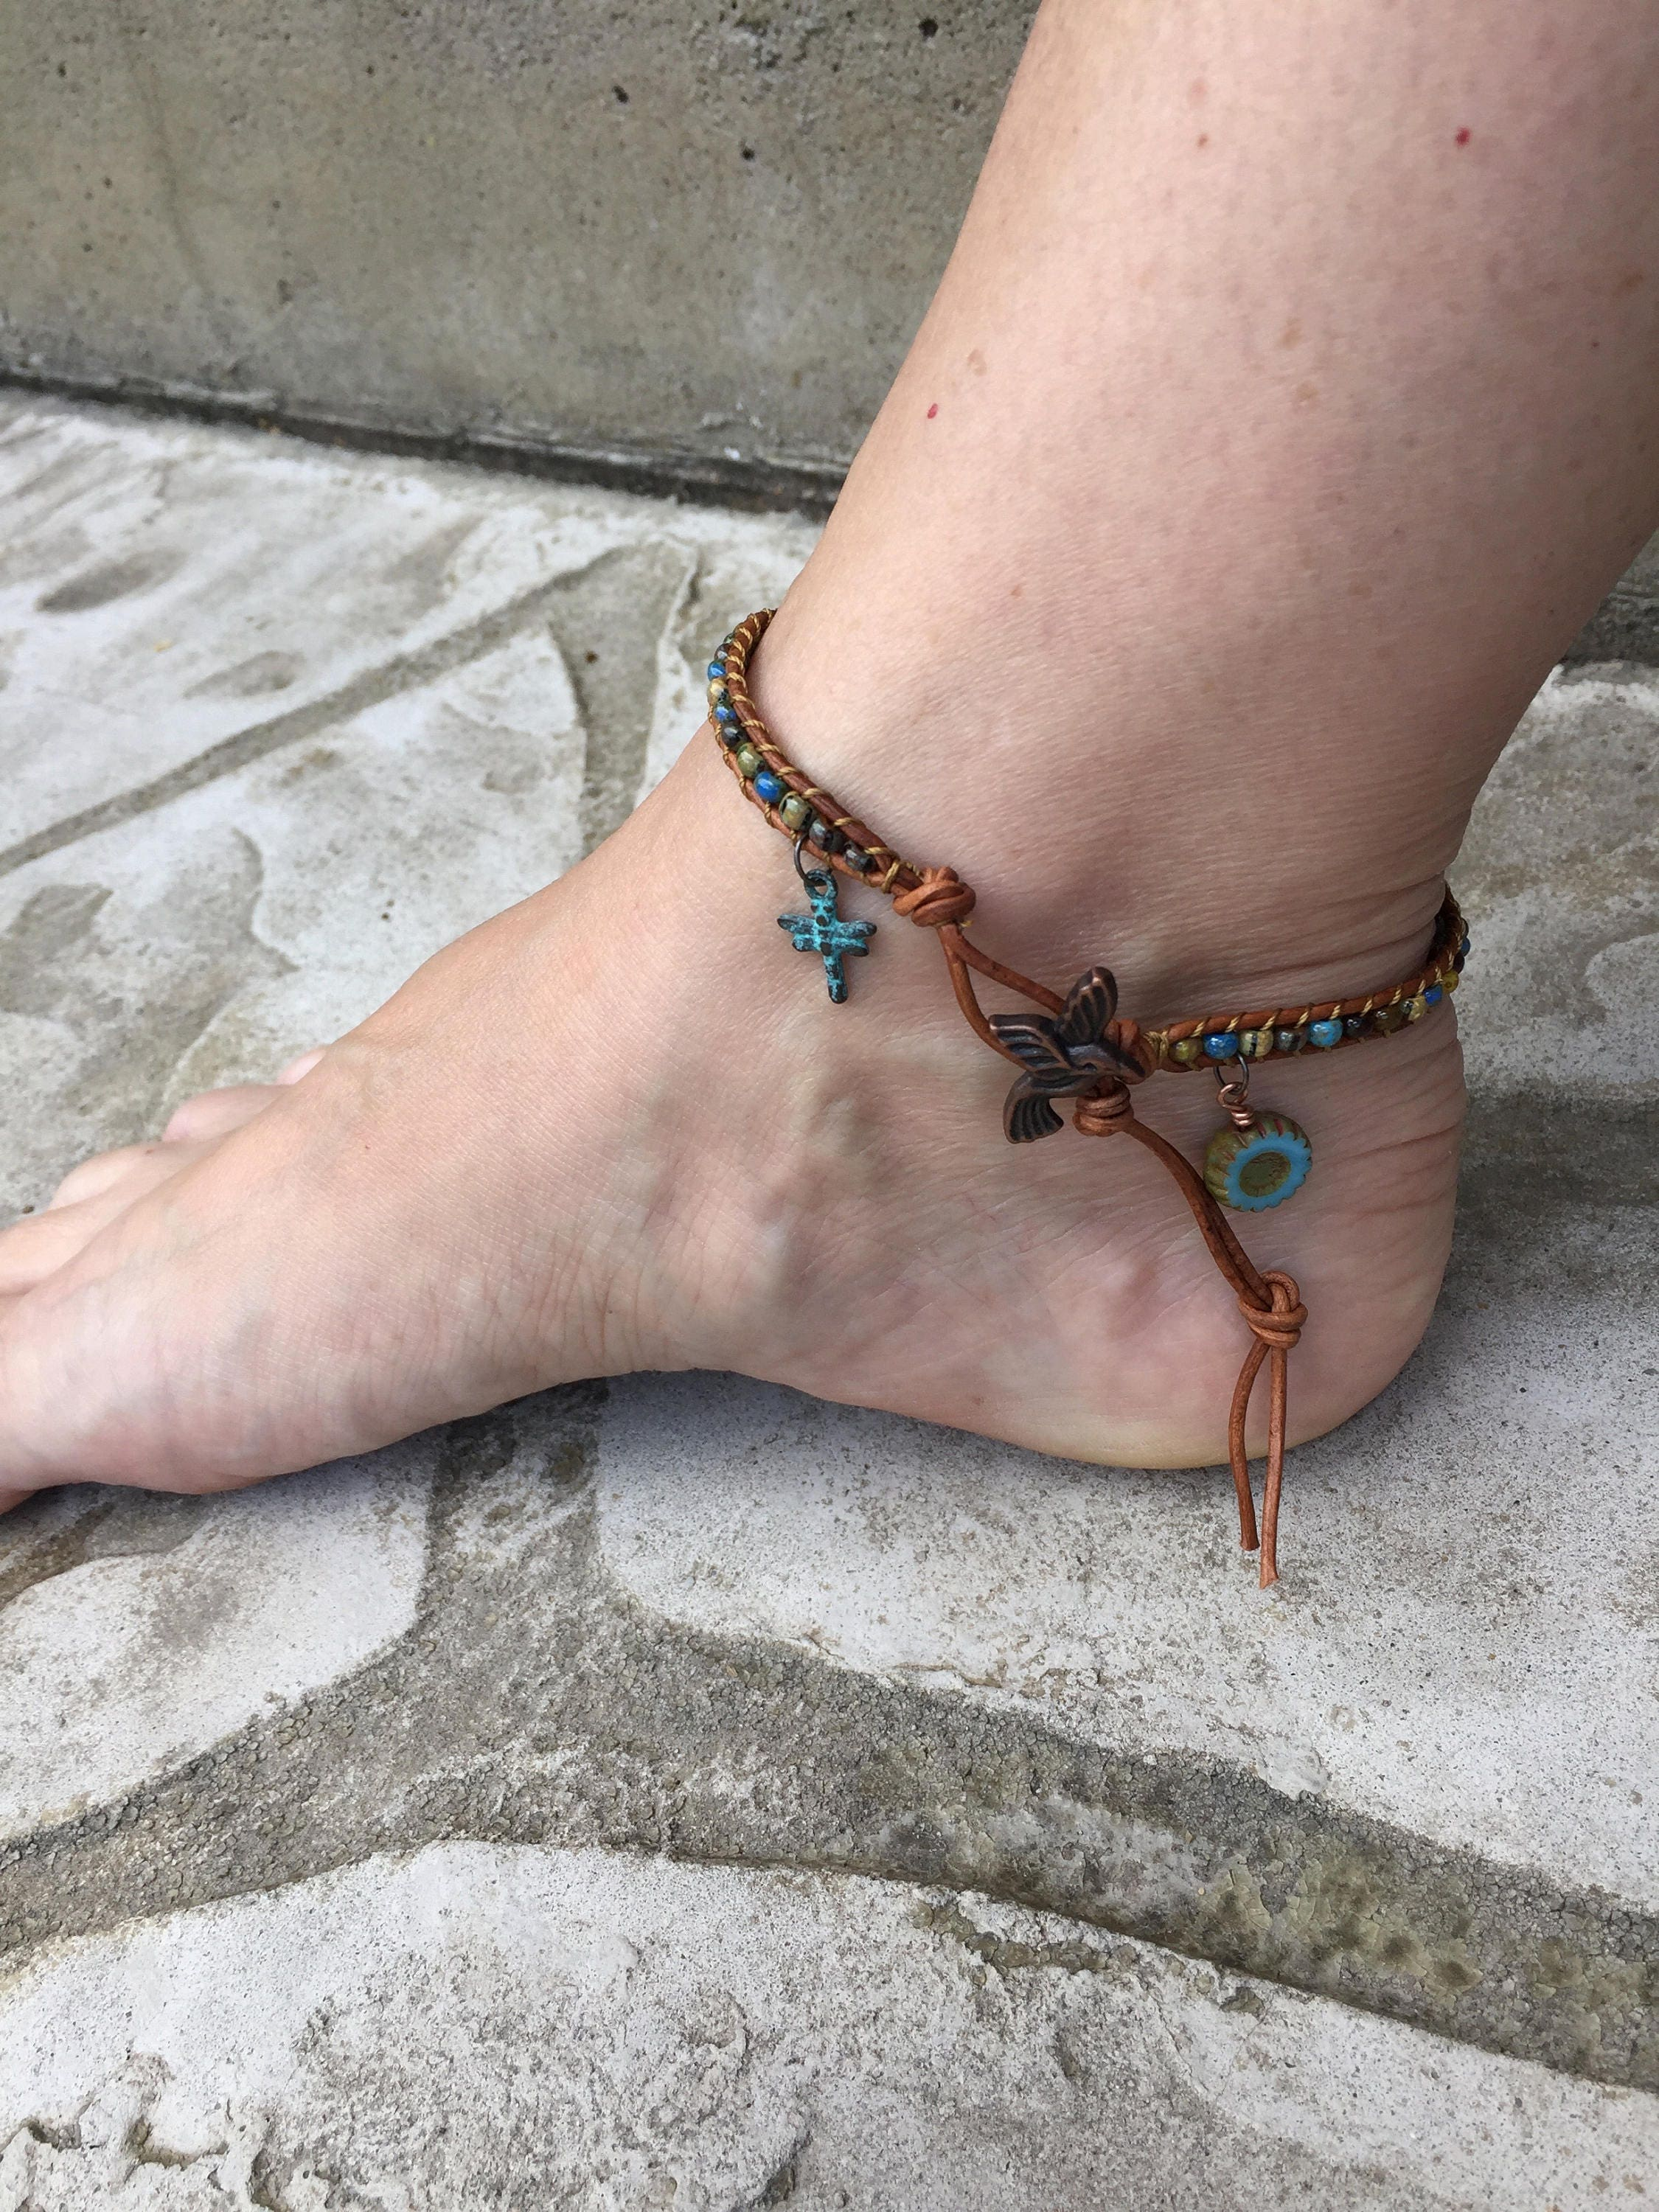 statement bracelets beach room boho hand jewellery brown bracelet red chain sexy australia raves female lyra leg crystal foot jewelry ankle vacation a popular sandals asteria or products anklet